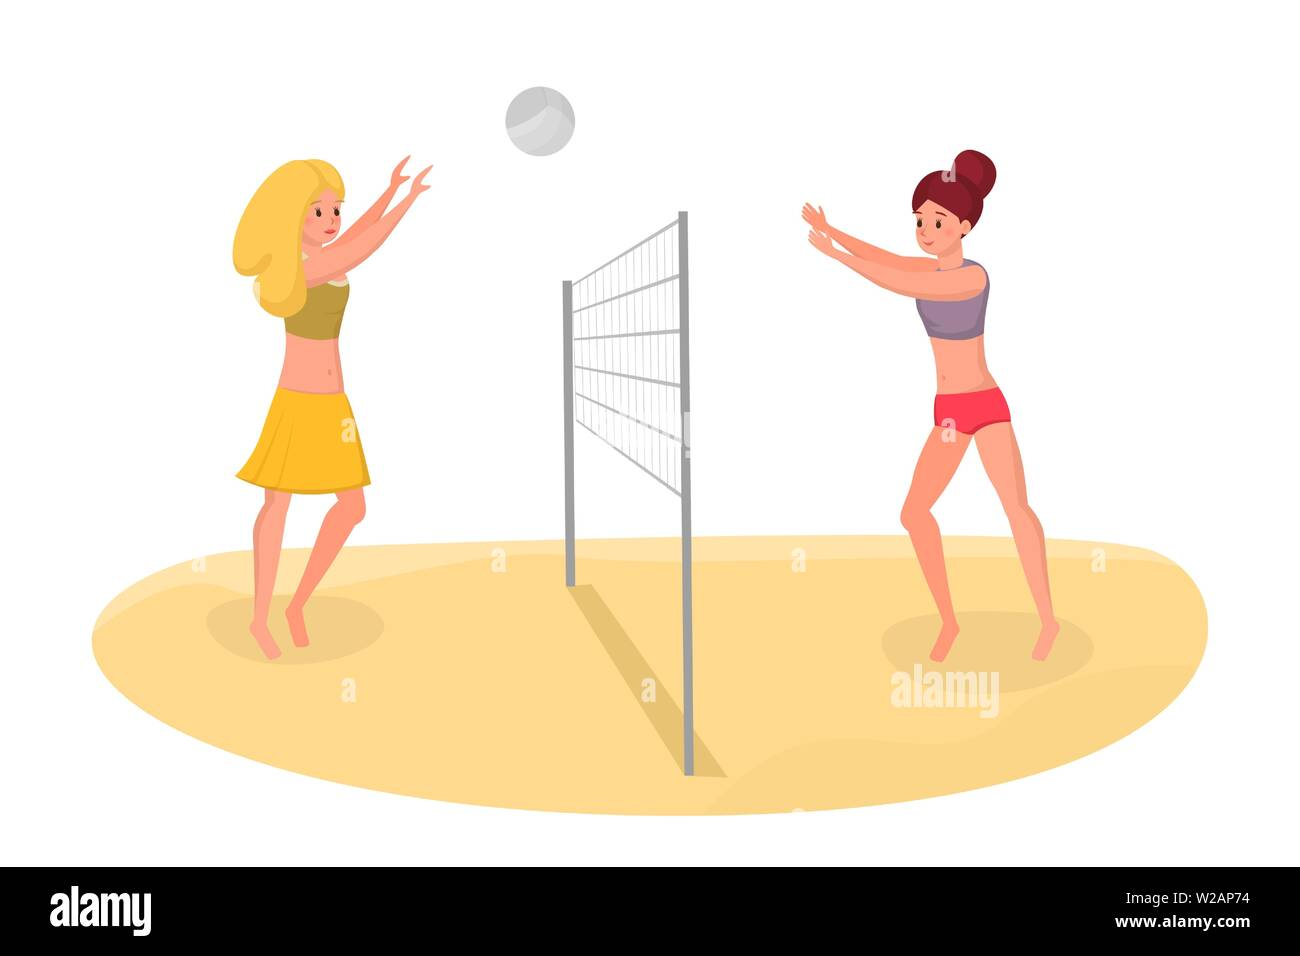 Friends playing volleyball vector illustration. Spending free time on holiday actively, healthy lifestyle isolated flat concept. Girls having fun, keeping fit during summer vacation cartoon characters - Stock Vector